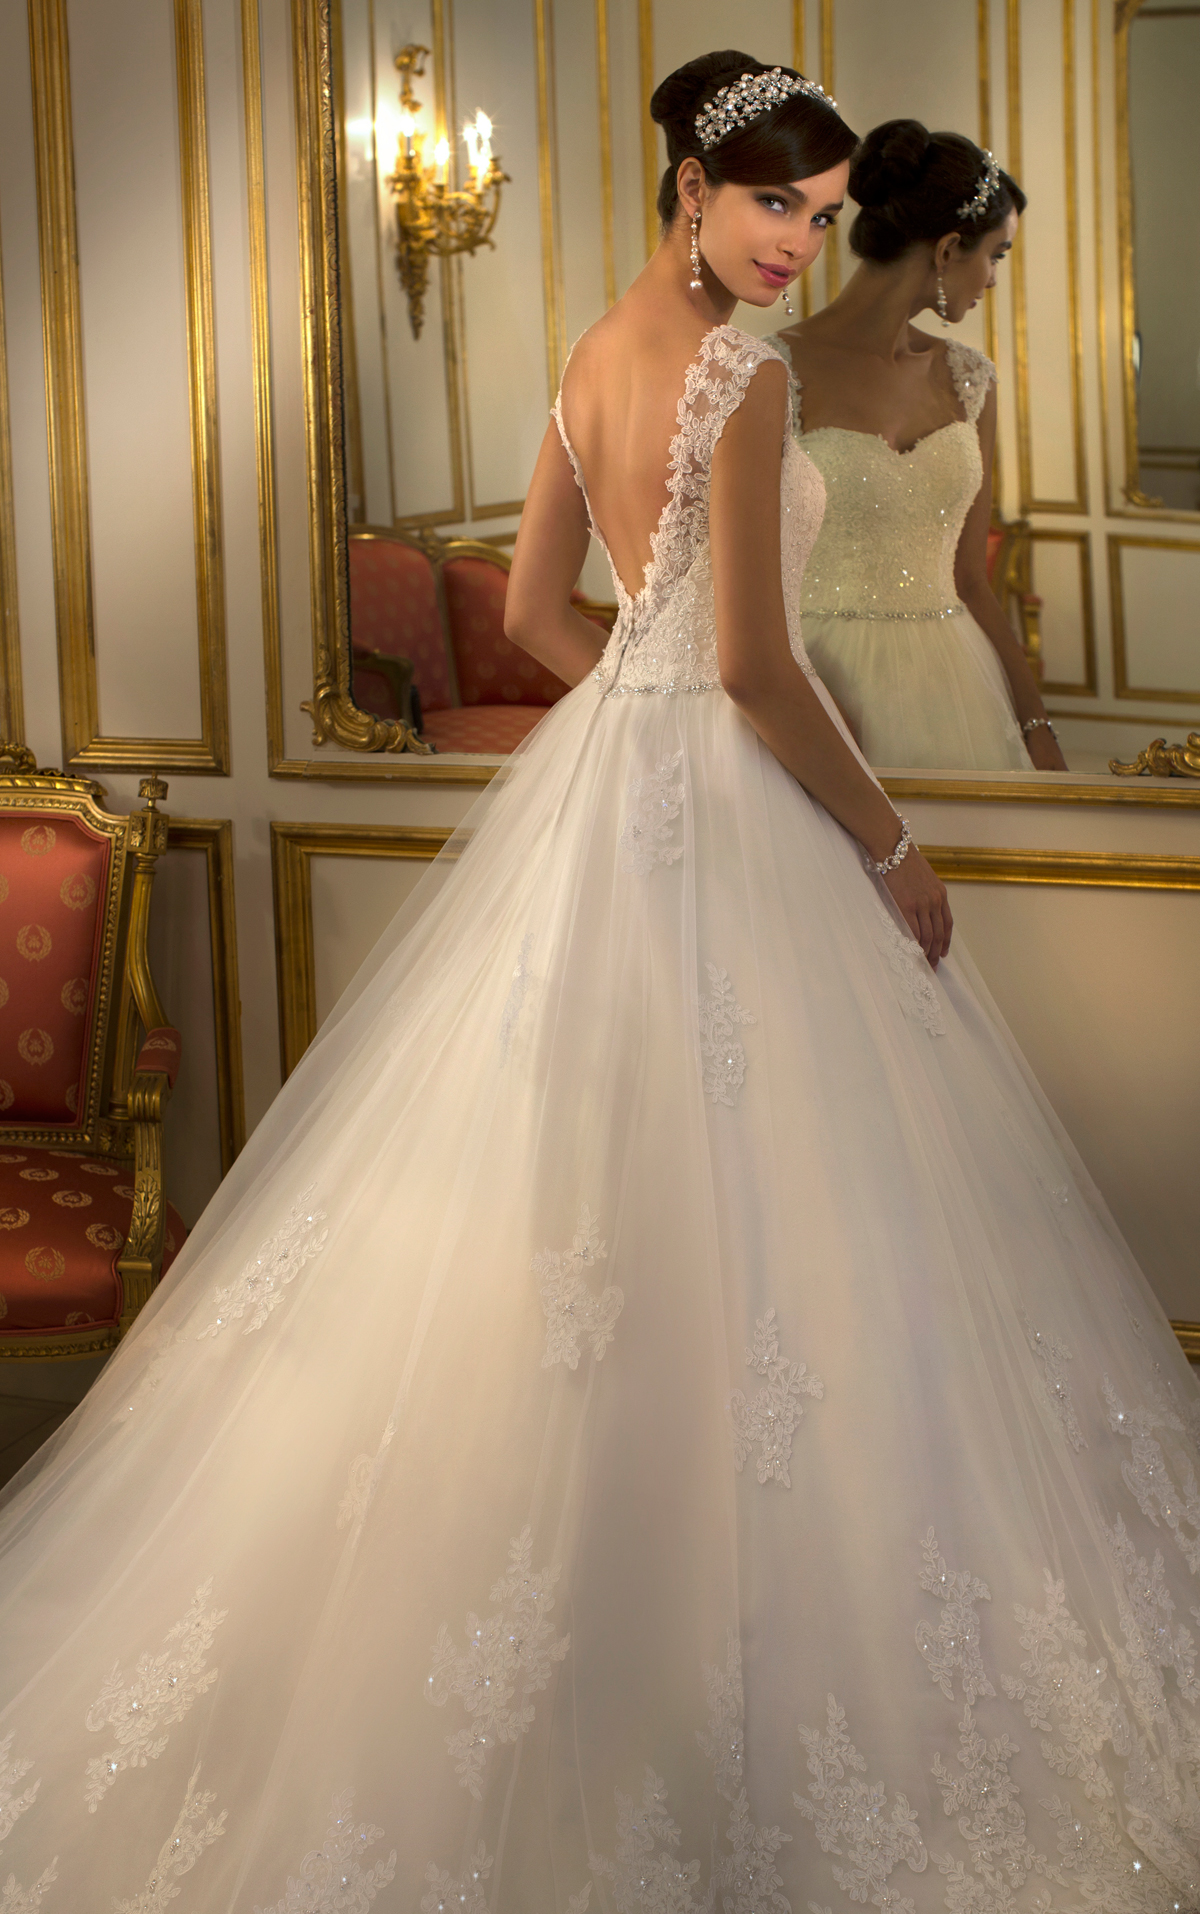 stella-york-wedding-dresses-2014-17-01162014